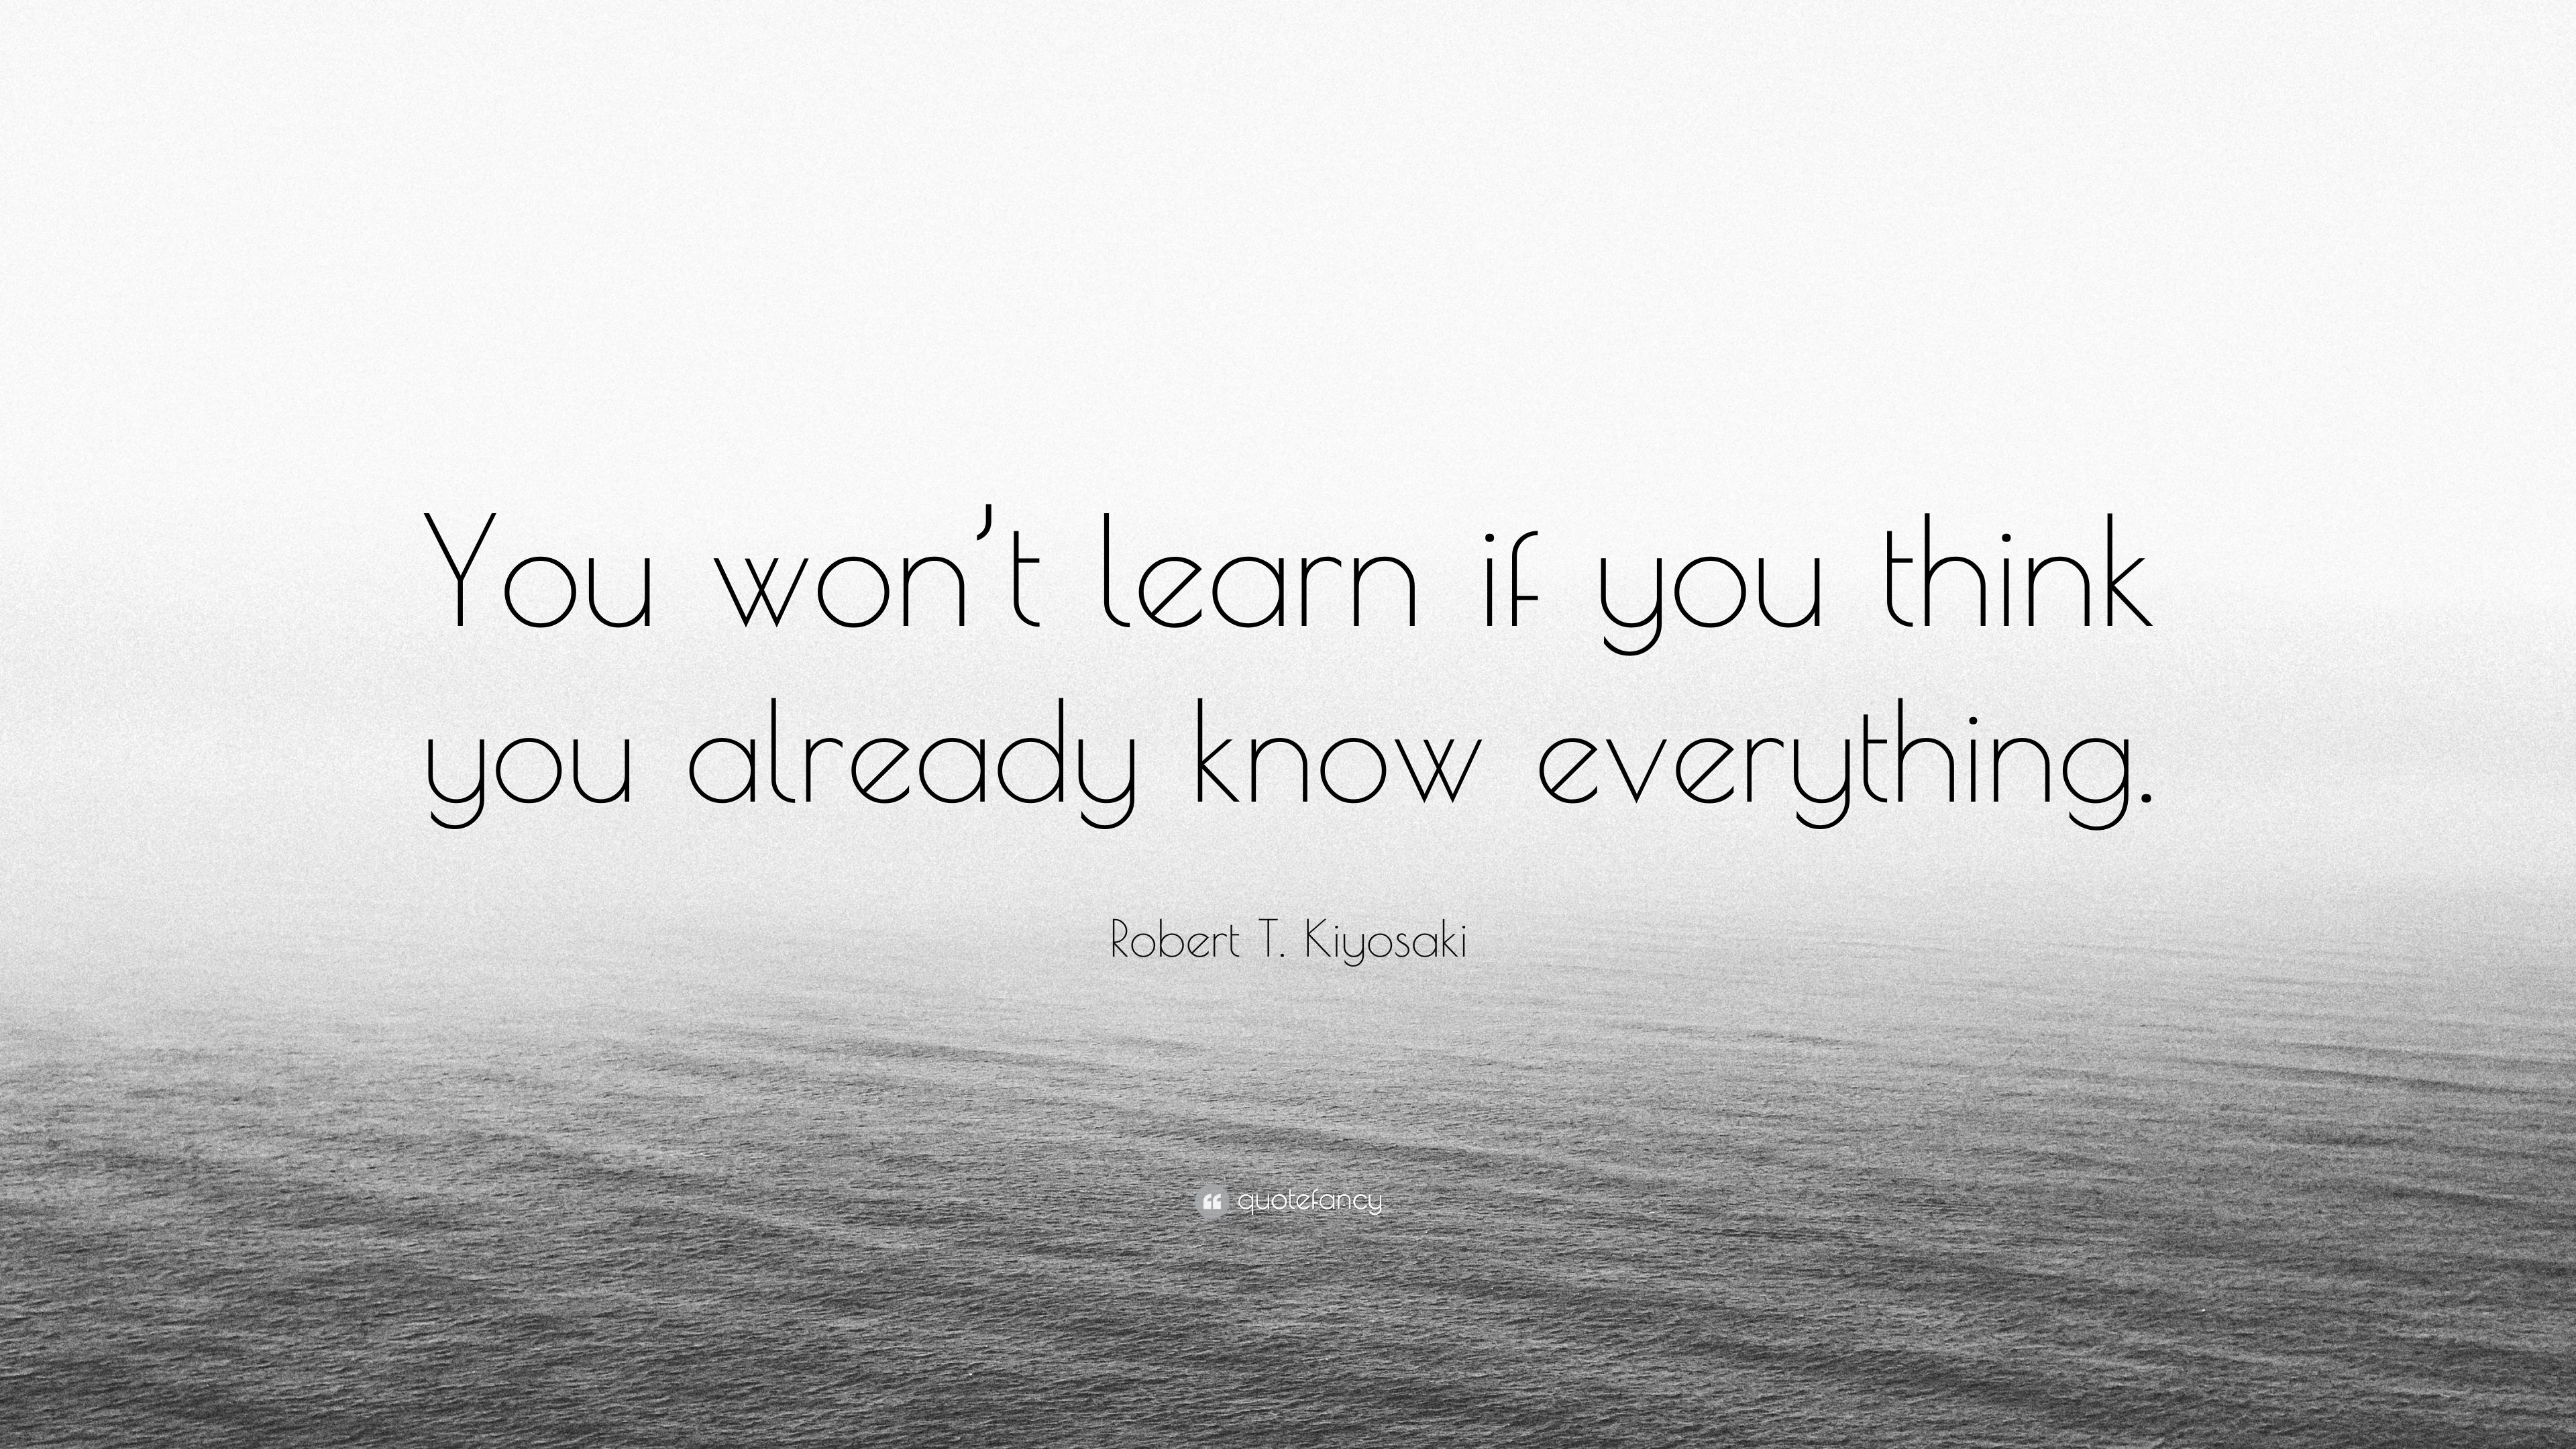 Robert T Kiyosaki Quote You Wont Learn If You Think You Already